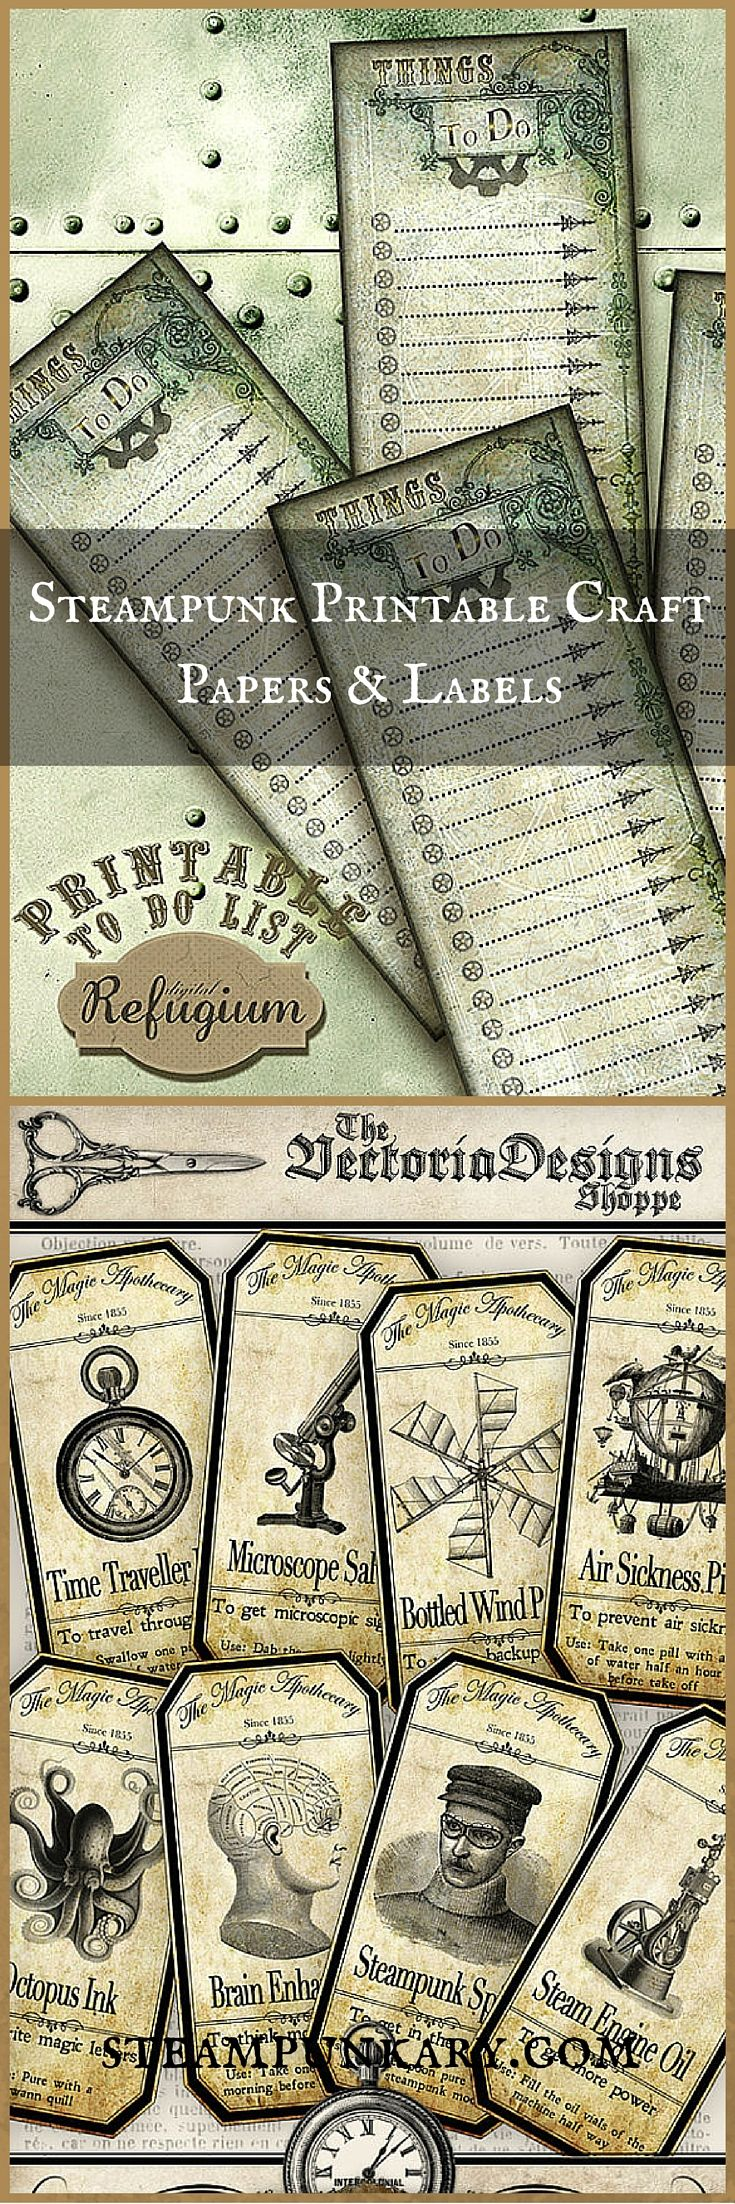 Steampunk Printable Craft Papers and Labels